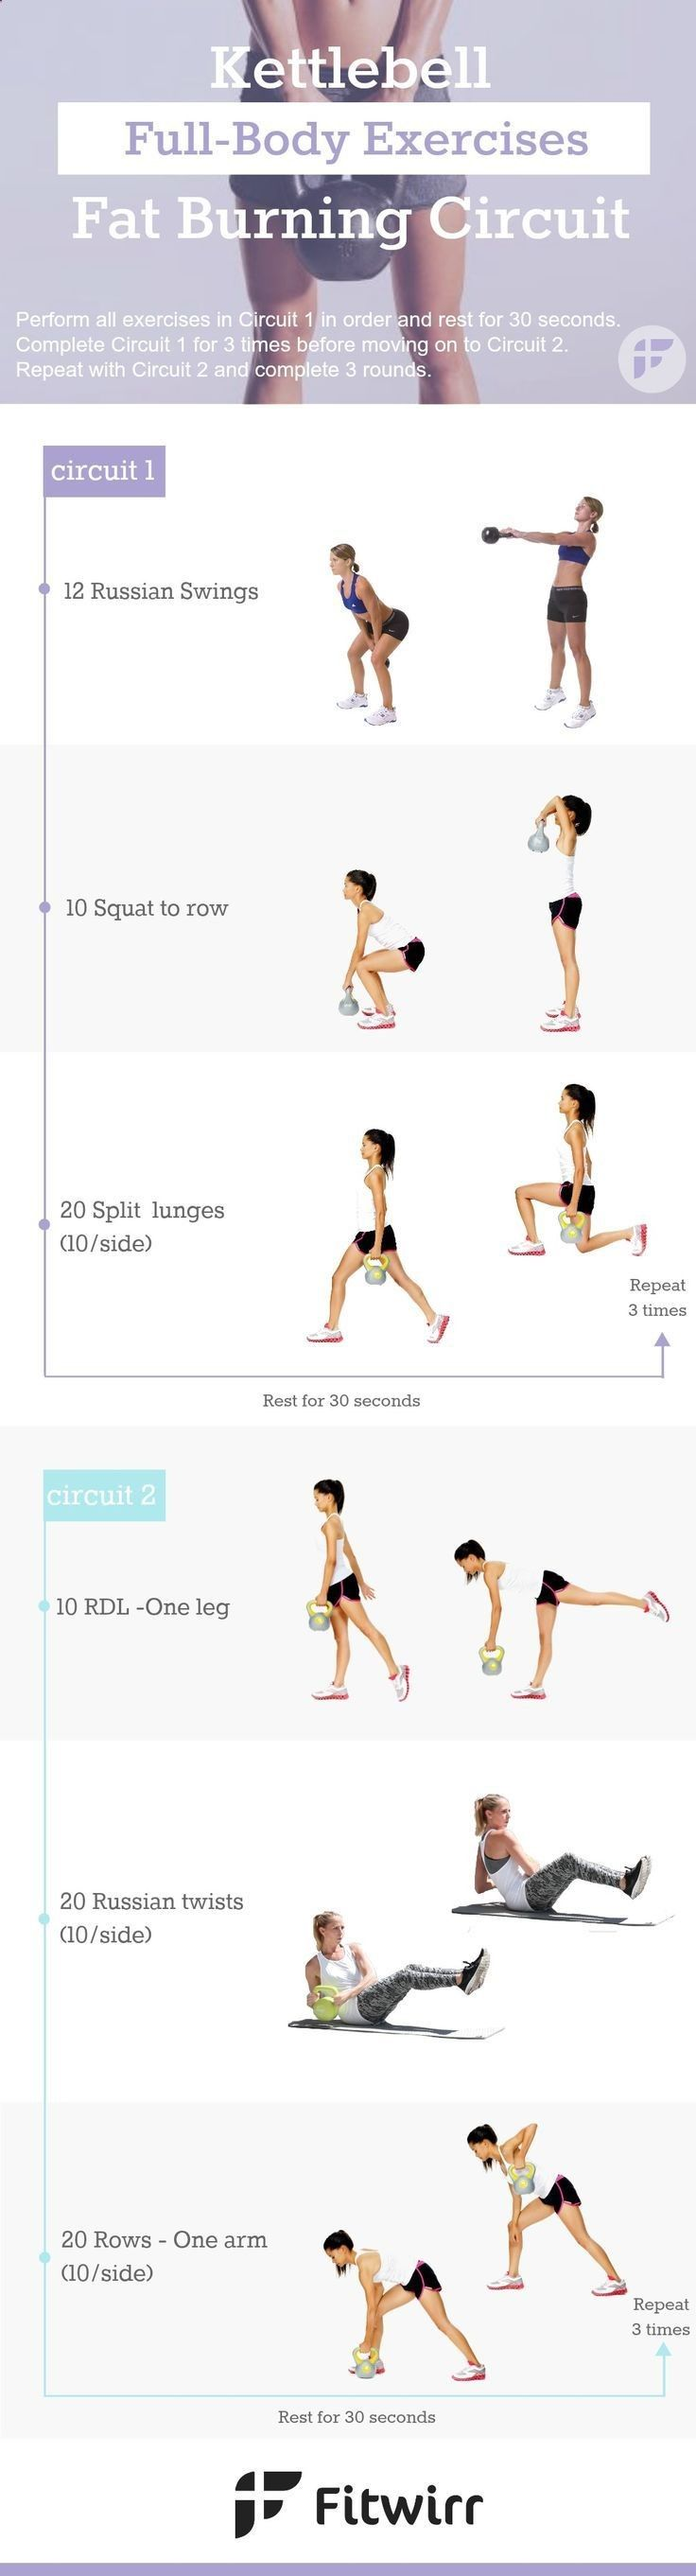 Burn calories, lose weight fast with this kettlebell workout routines -burn up to 270 calories in just 20 minutes with kettlebell exercises, more calories burned in this short workout than a typical weight training or cardio routine. http://www.weightlossjumpstars.com/weight-loss-exercise-rules/